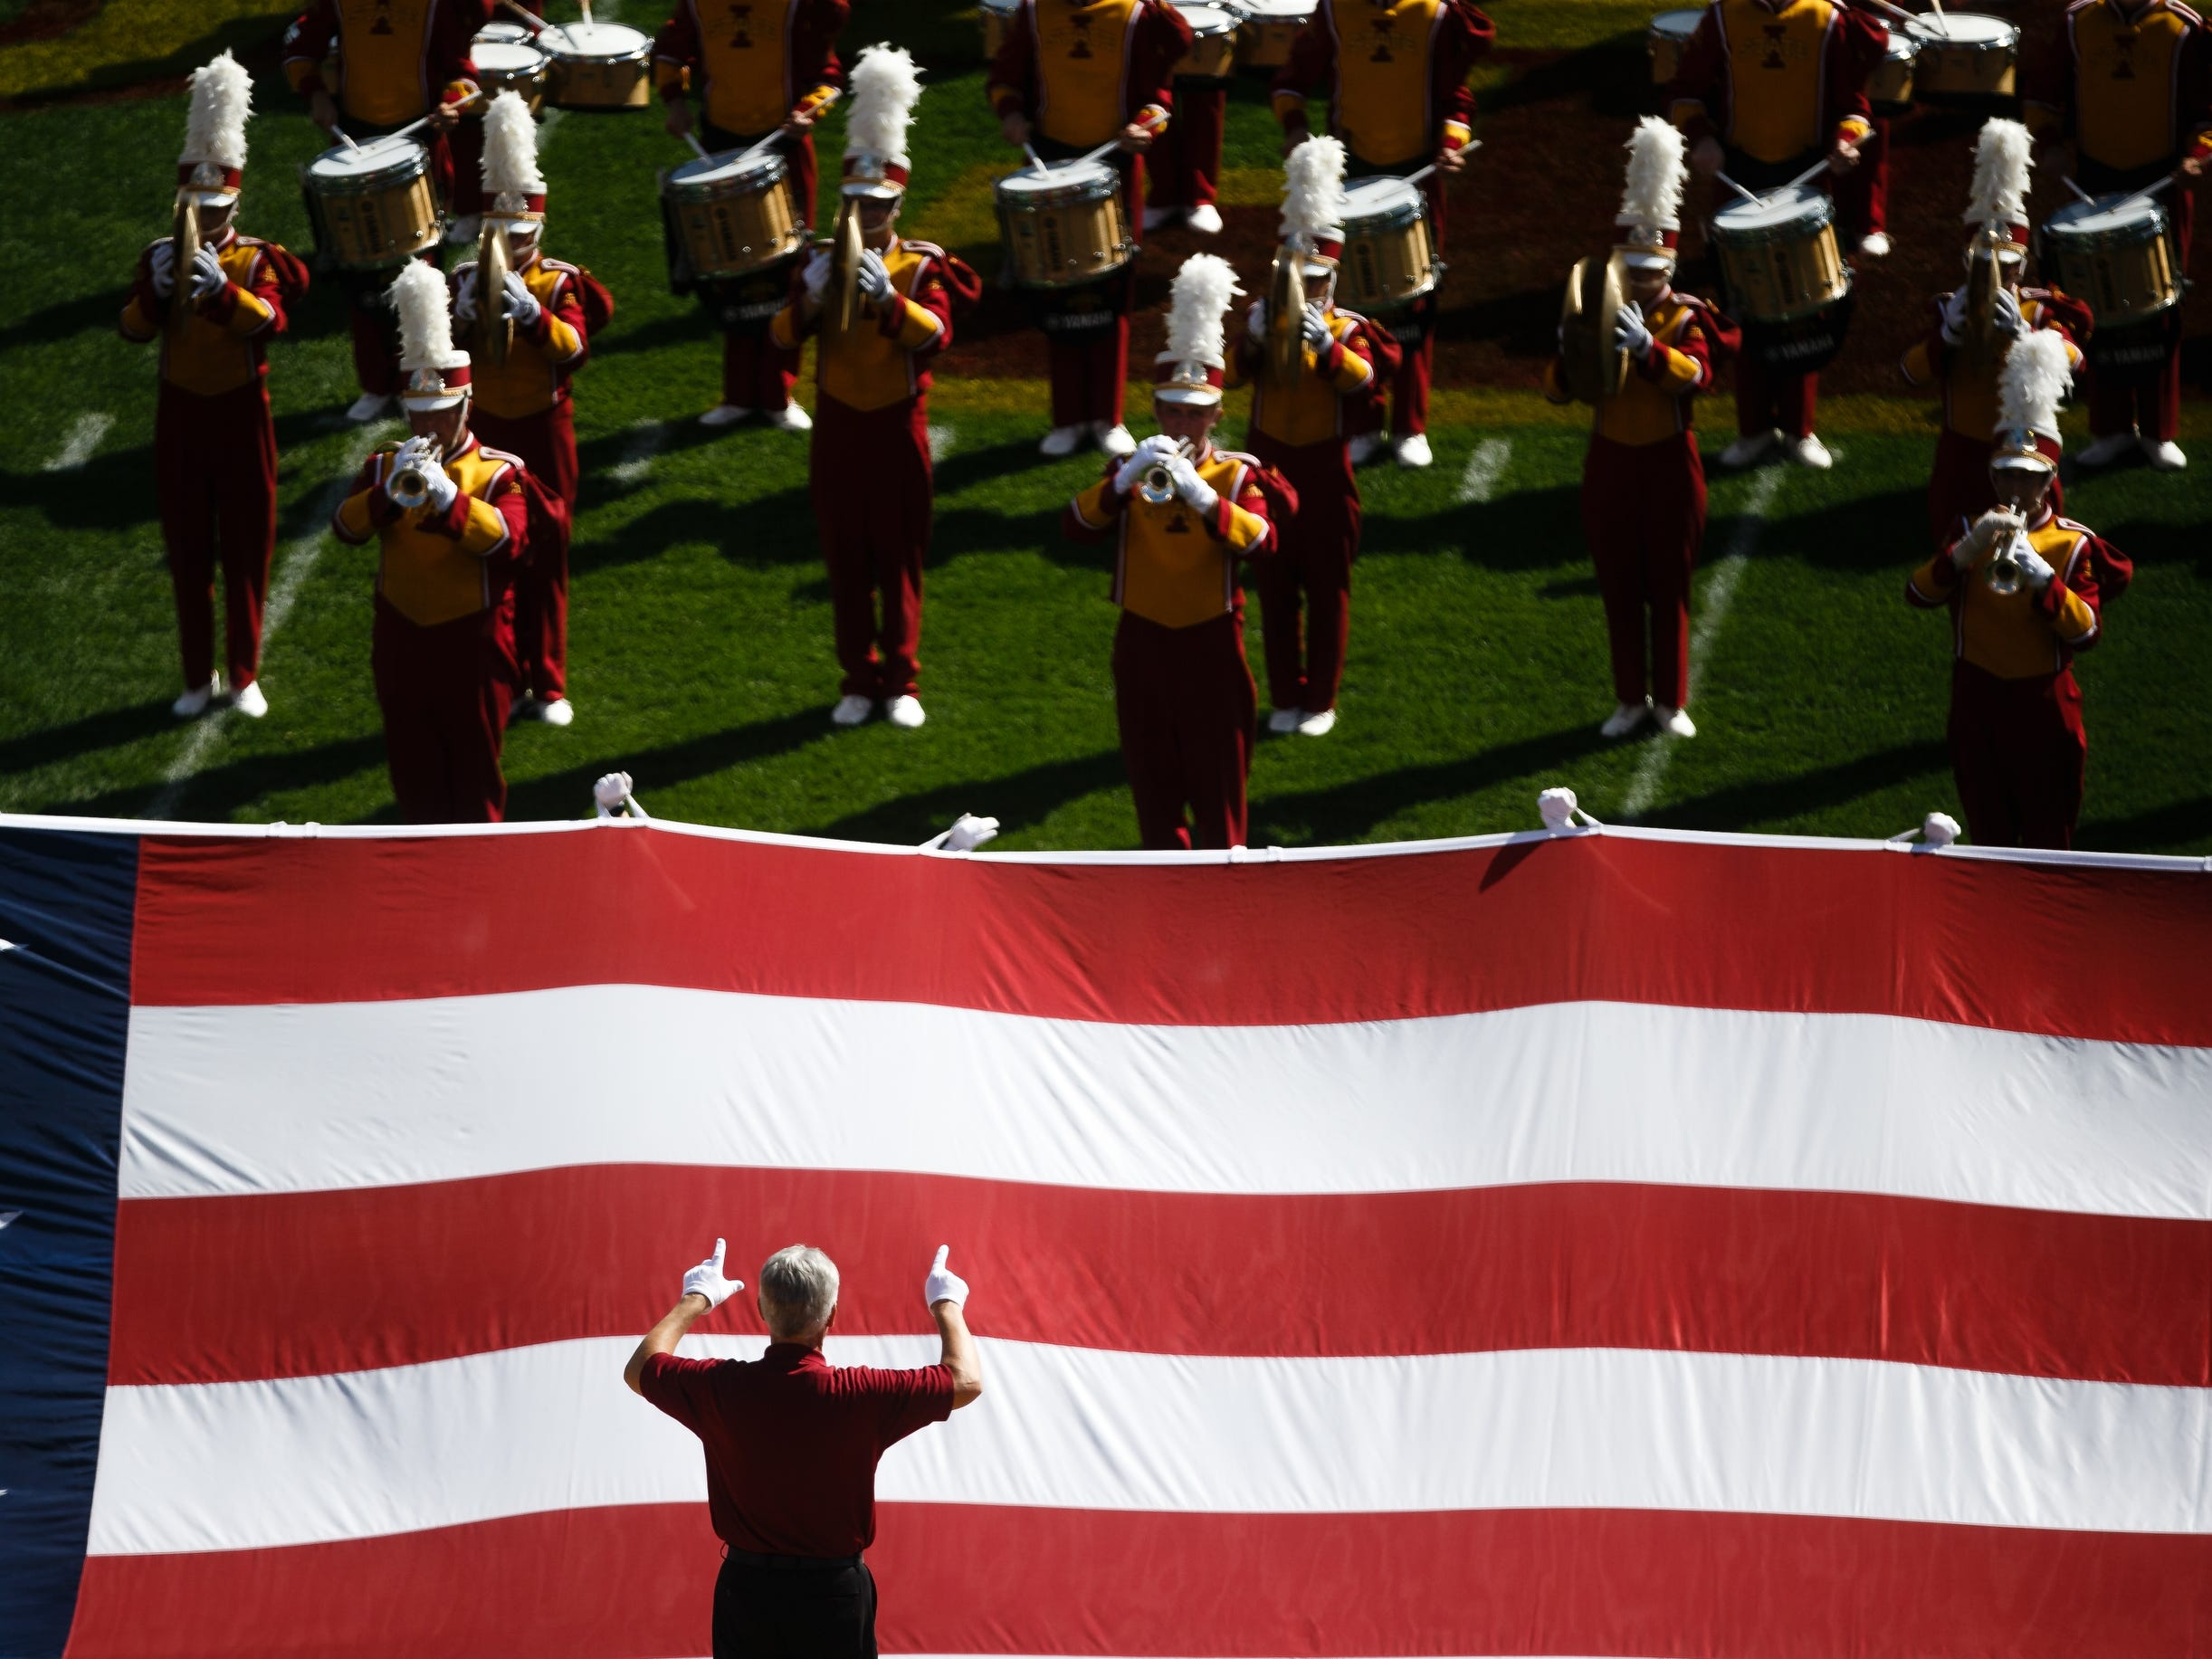 The Iowa State Marching Band plays on the field before Iowa State takes on Oklahoma at Jack Trice Stadium on Saturday, Sept. 15, 2018 in Ames. Oklahoma takes a 24-10 lead into halftime.